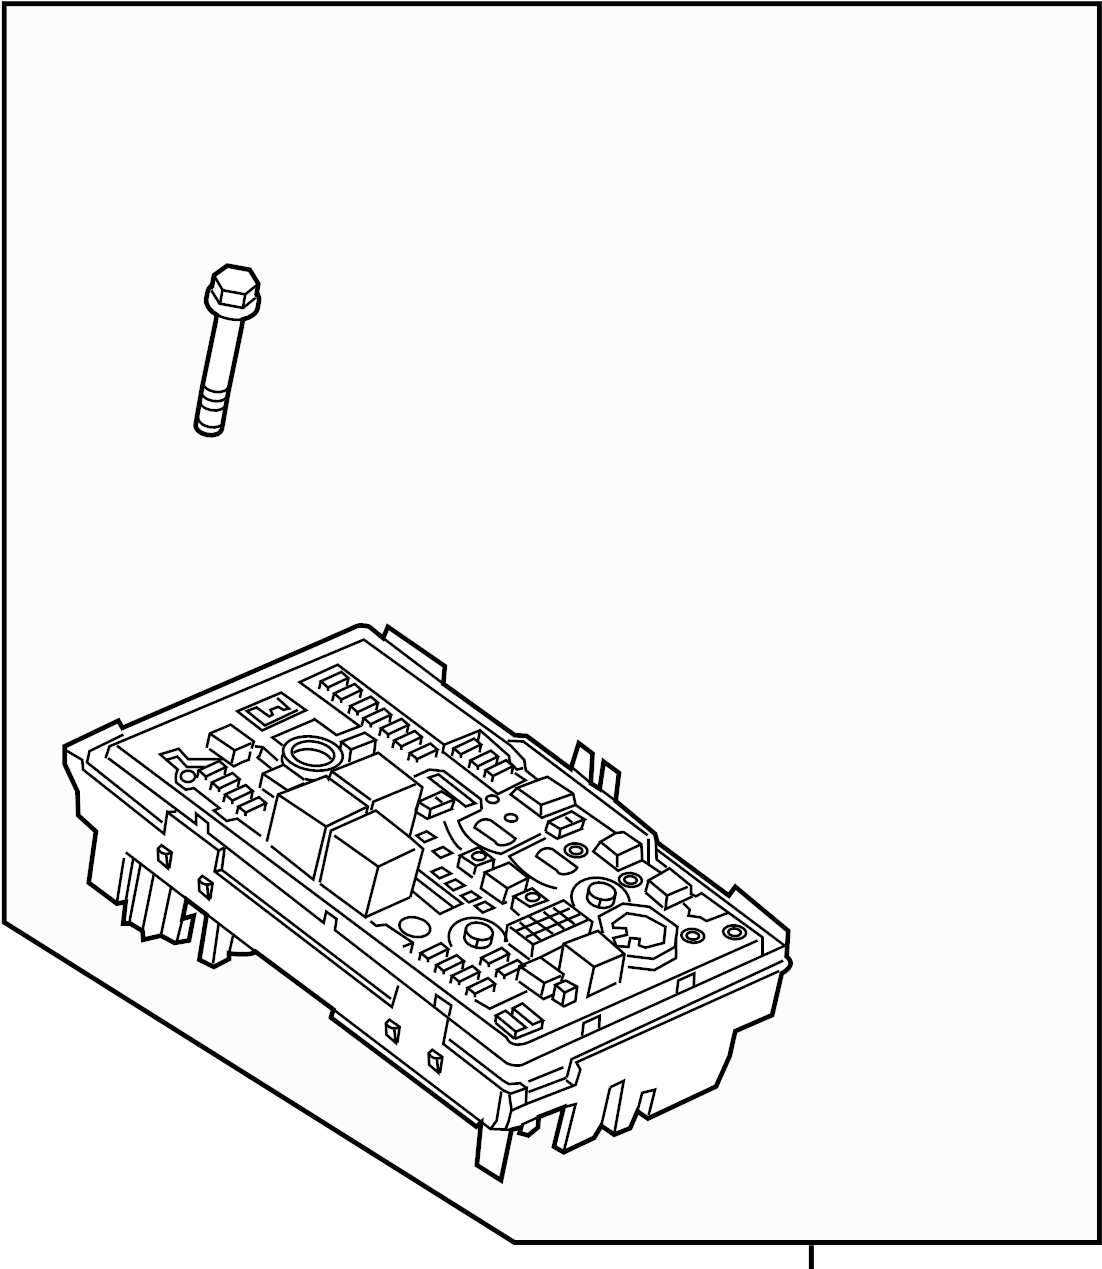 Cadillac ELR Fuse and Relay Center. ENGINE COMPARTMENT